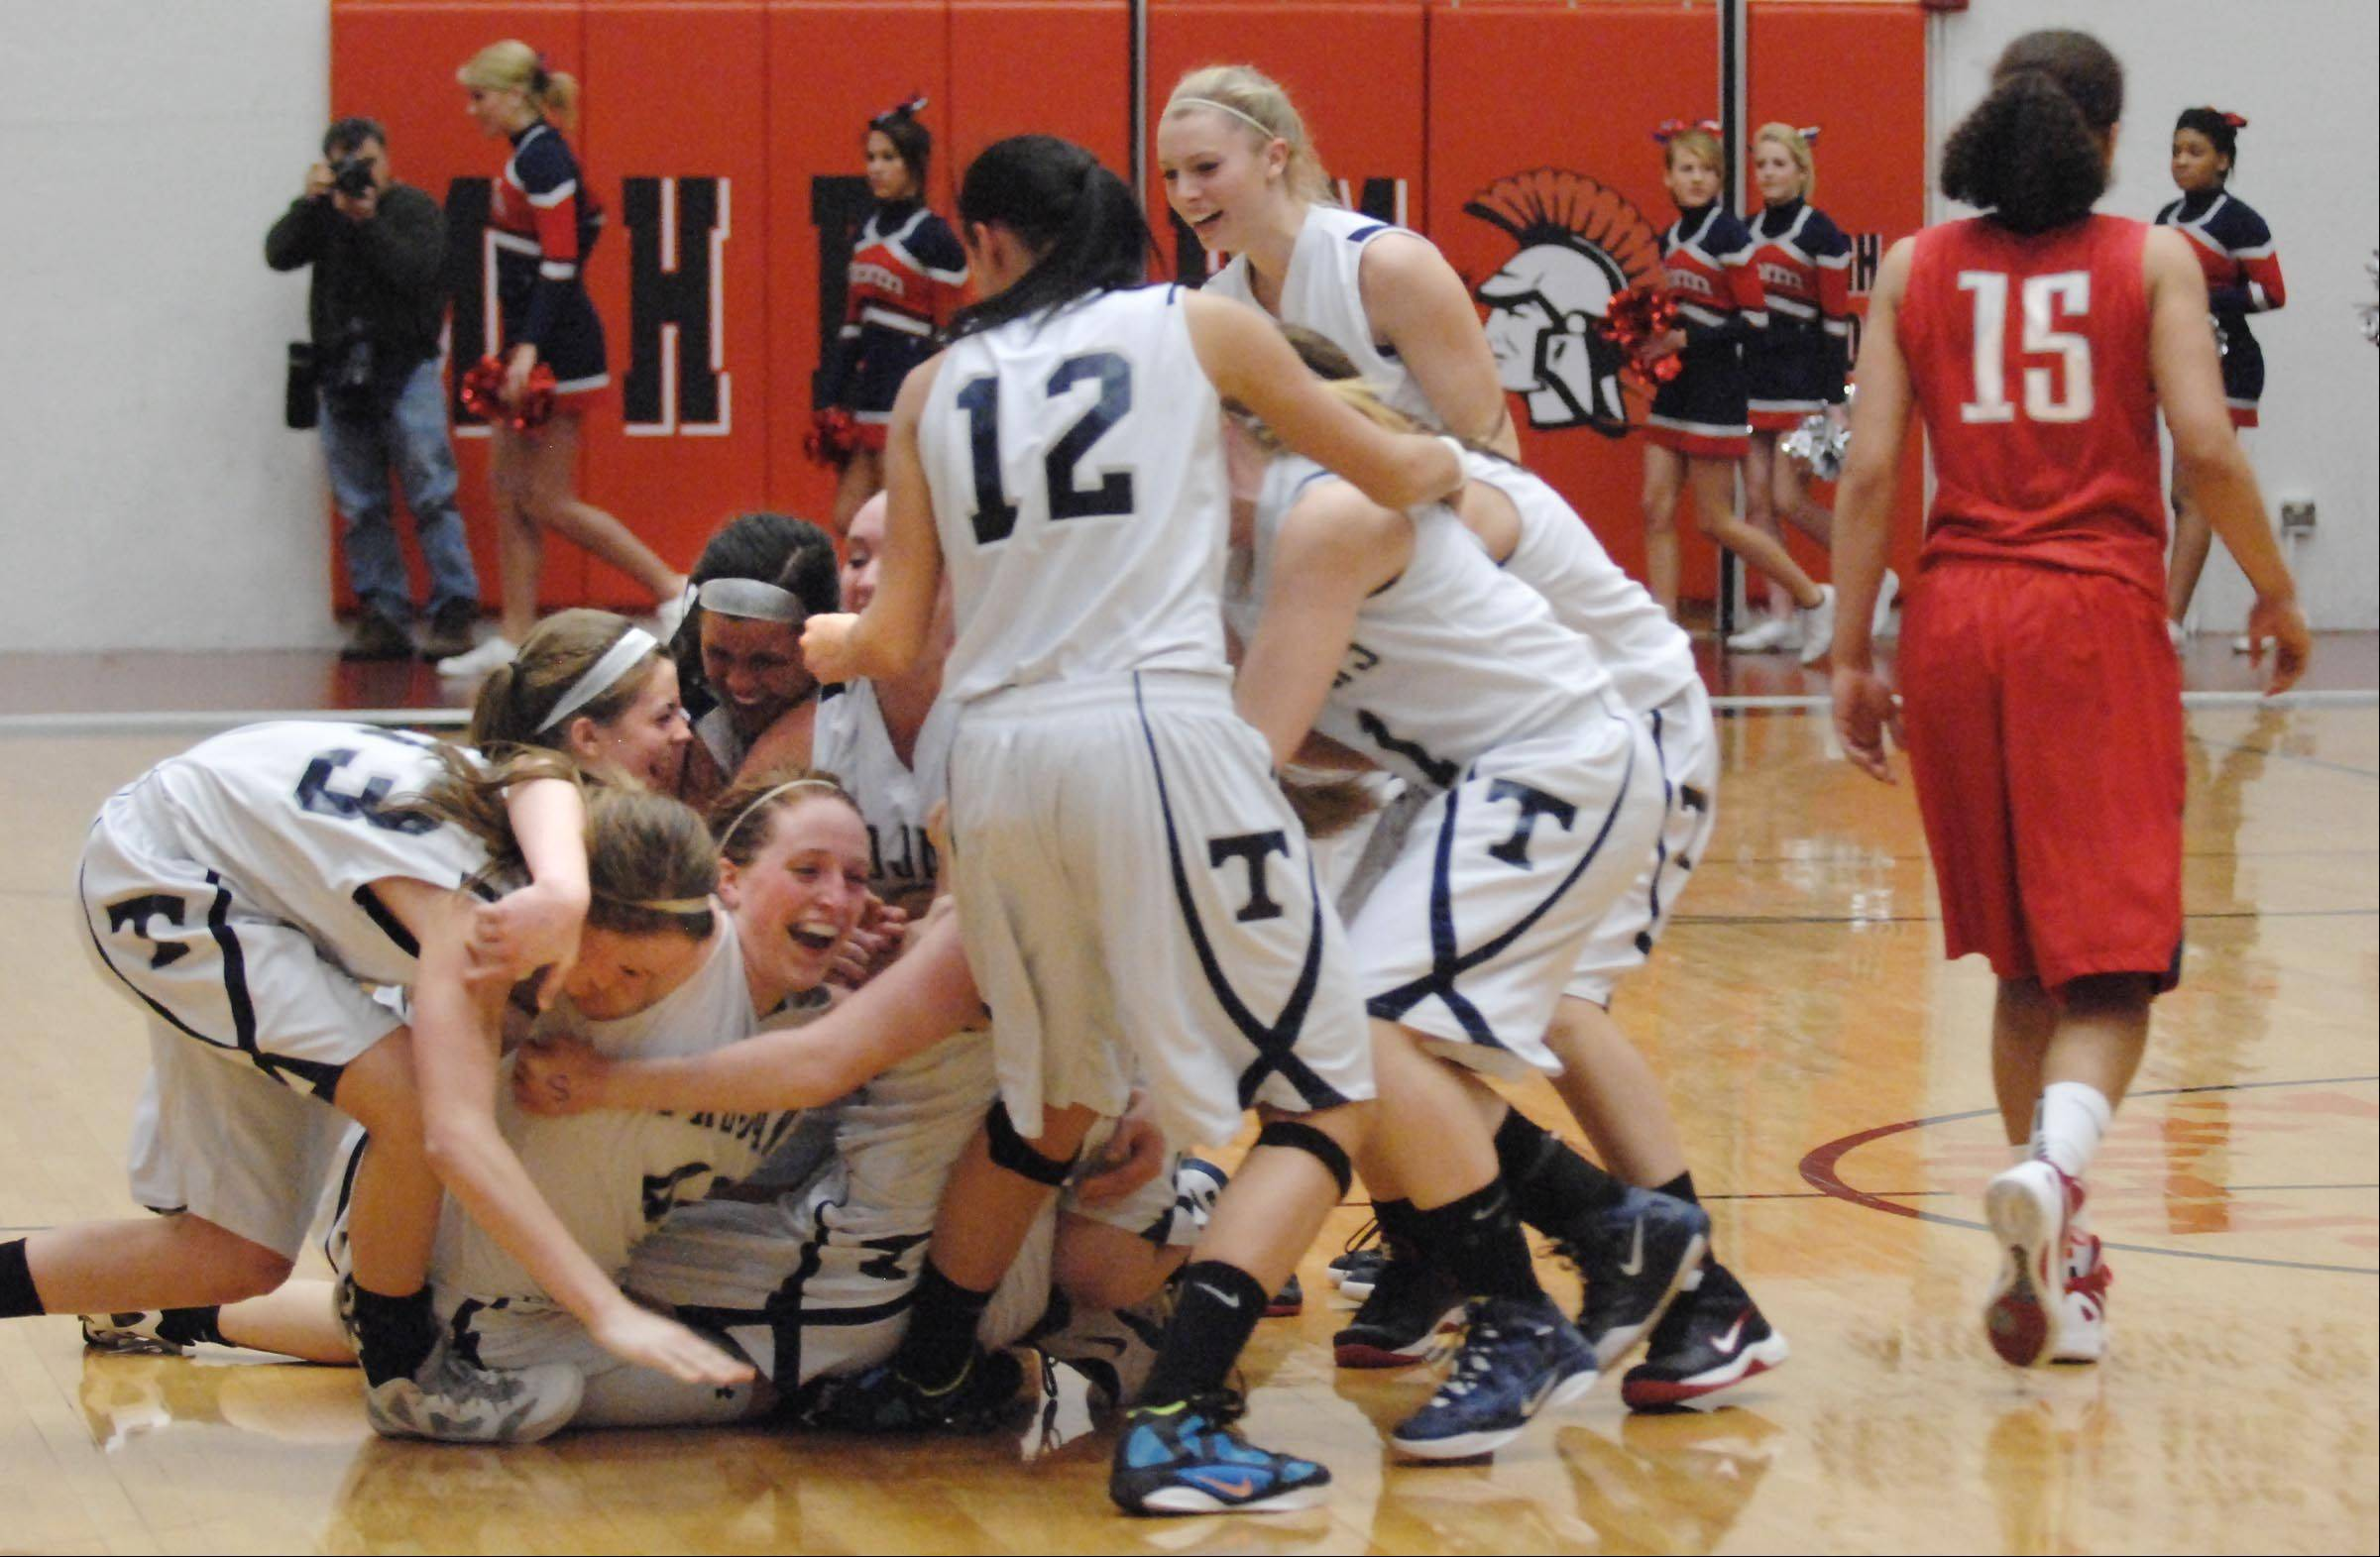 Cary-Grove celebrates their win as South Elgin's Becca Smith walks past at Tuesday's McHenry sectional basektball game.